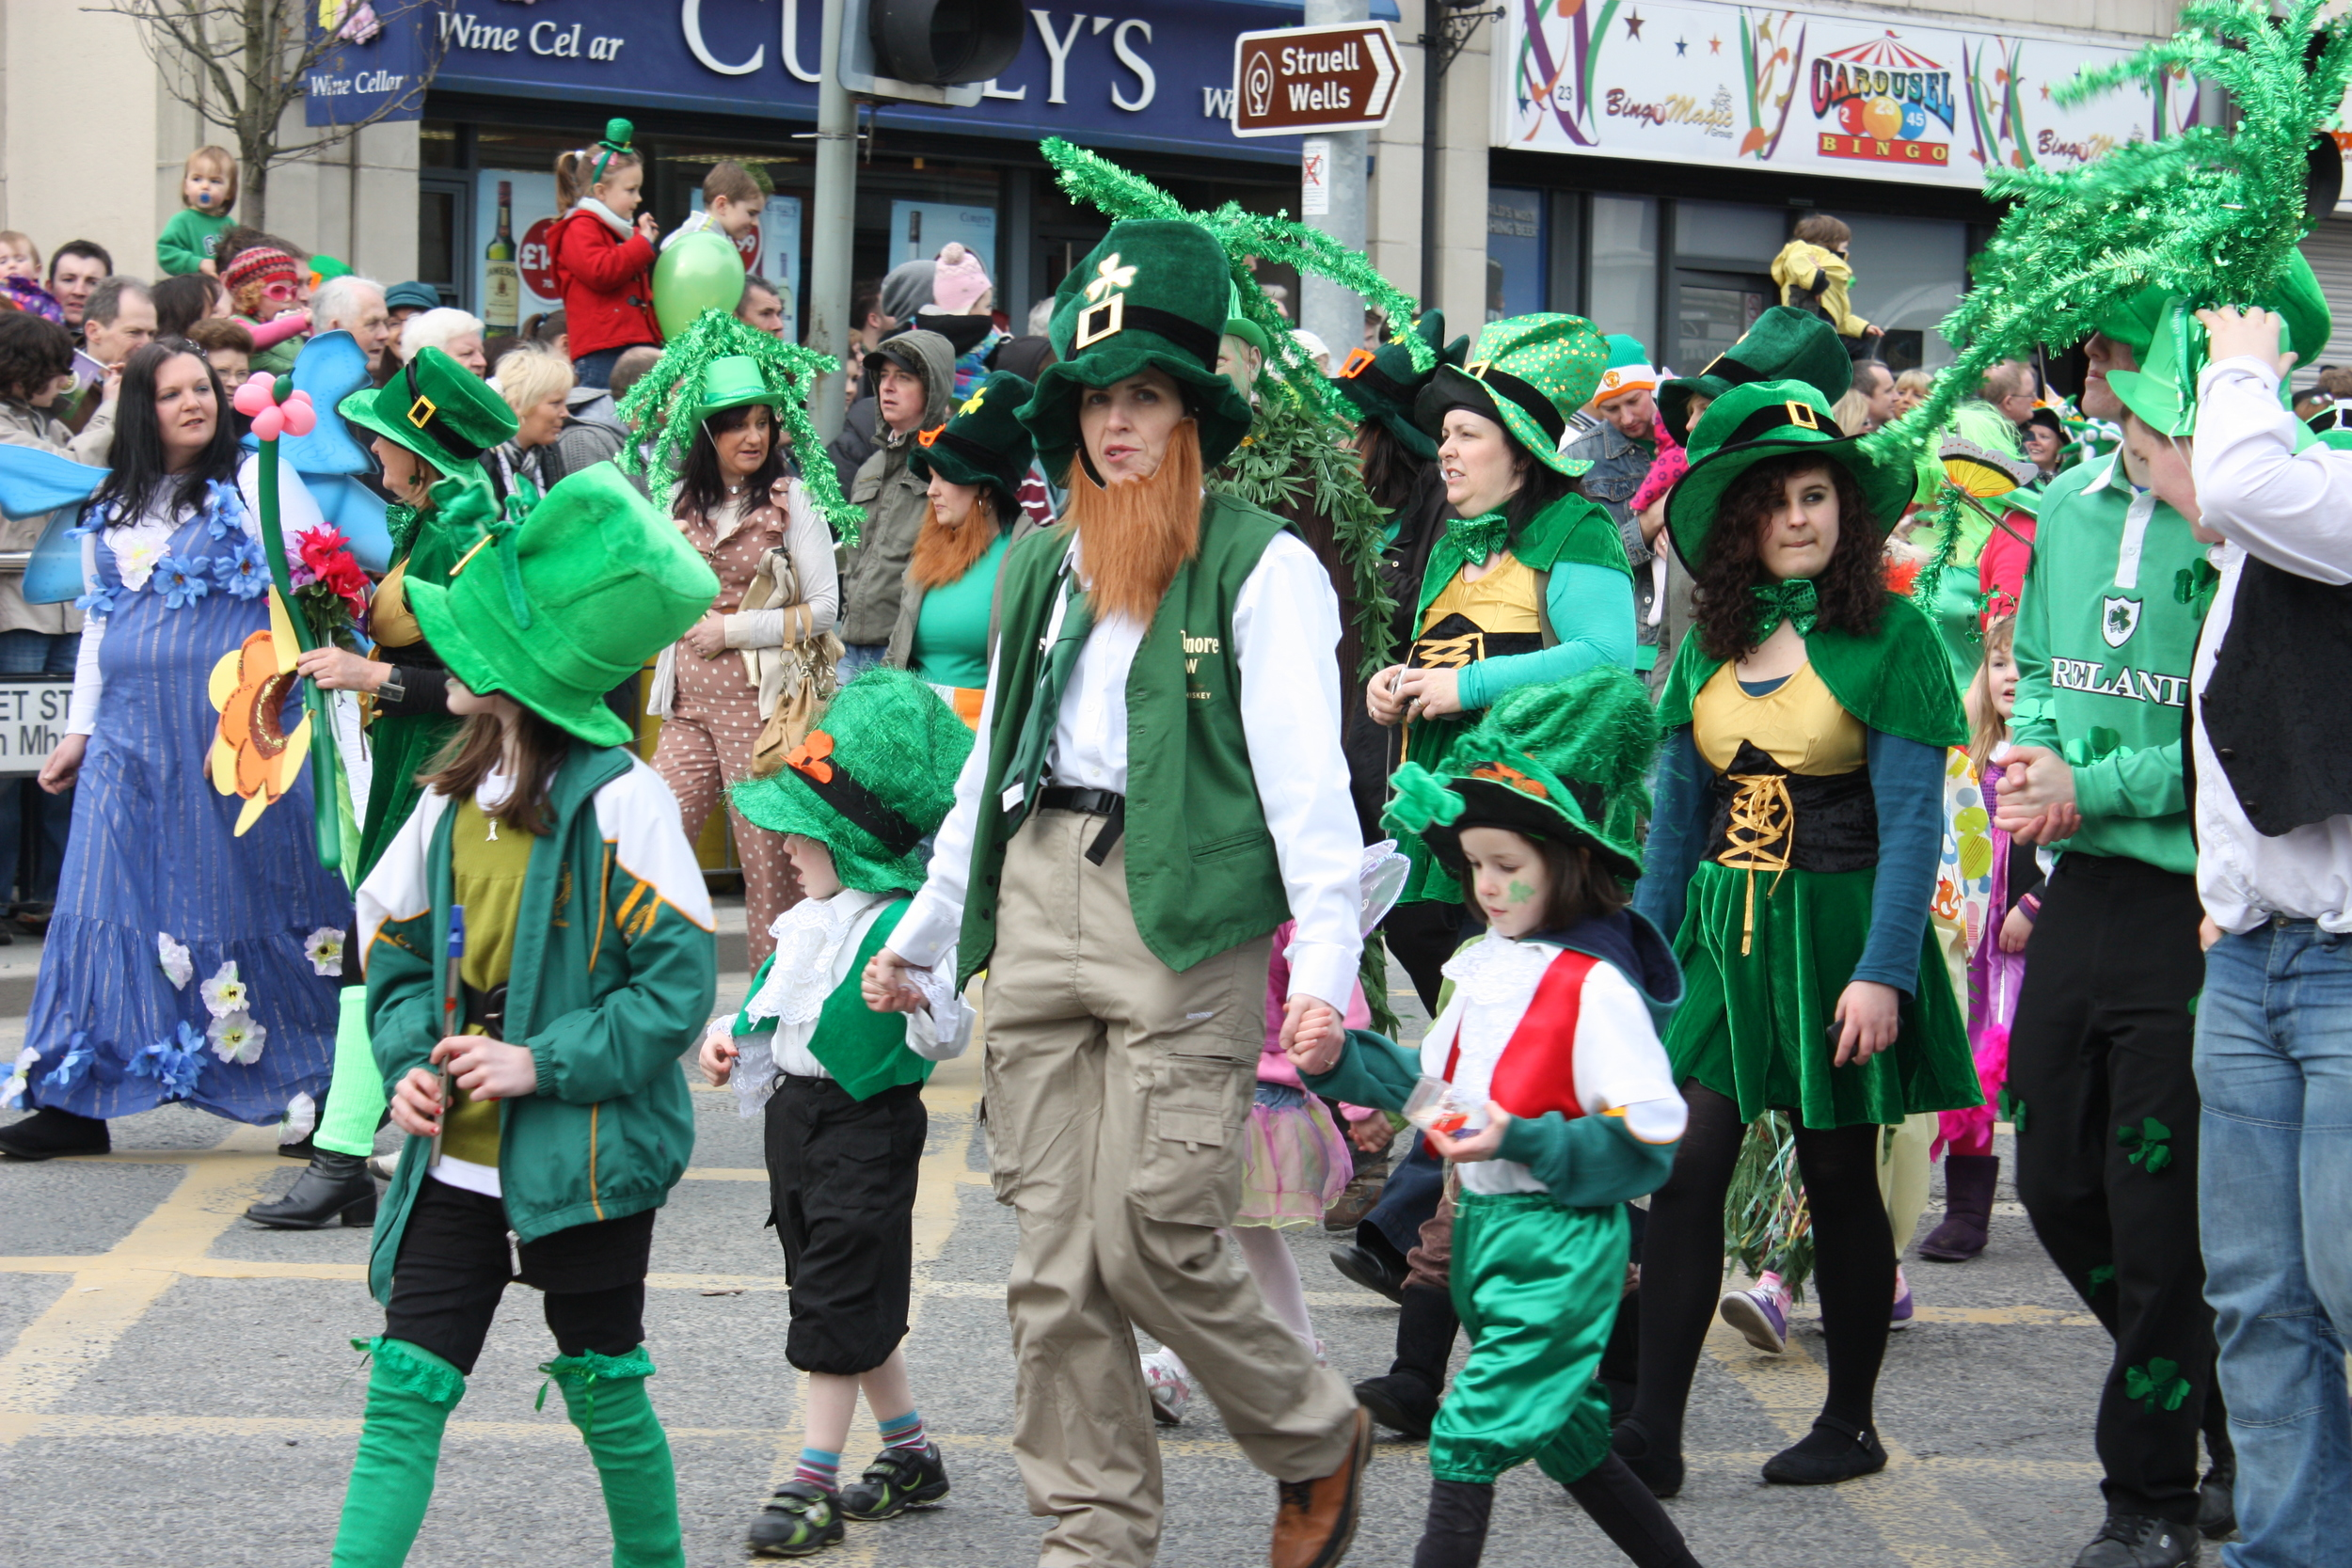 """ St Patricks Day, Downpatrick, March 2011 "" by  Ardfern  is licensed under  CC BY-SA 3.0 ."